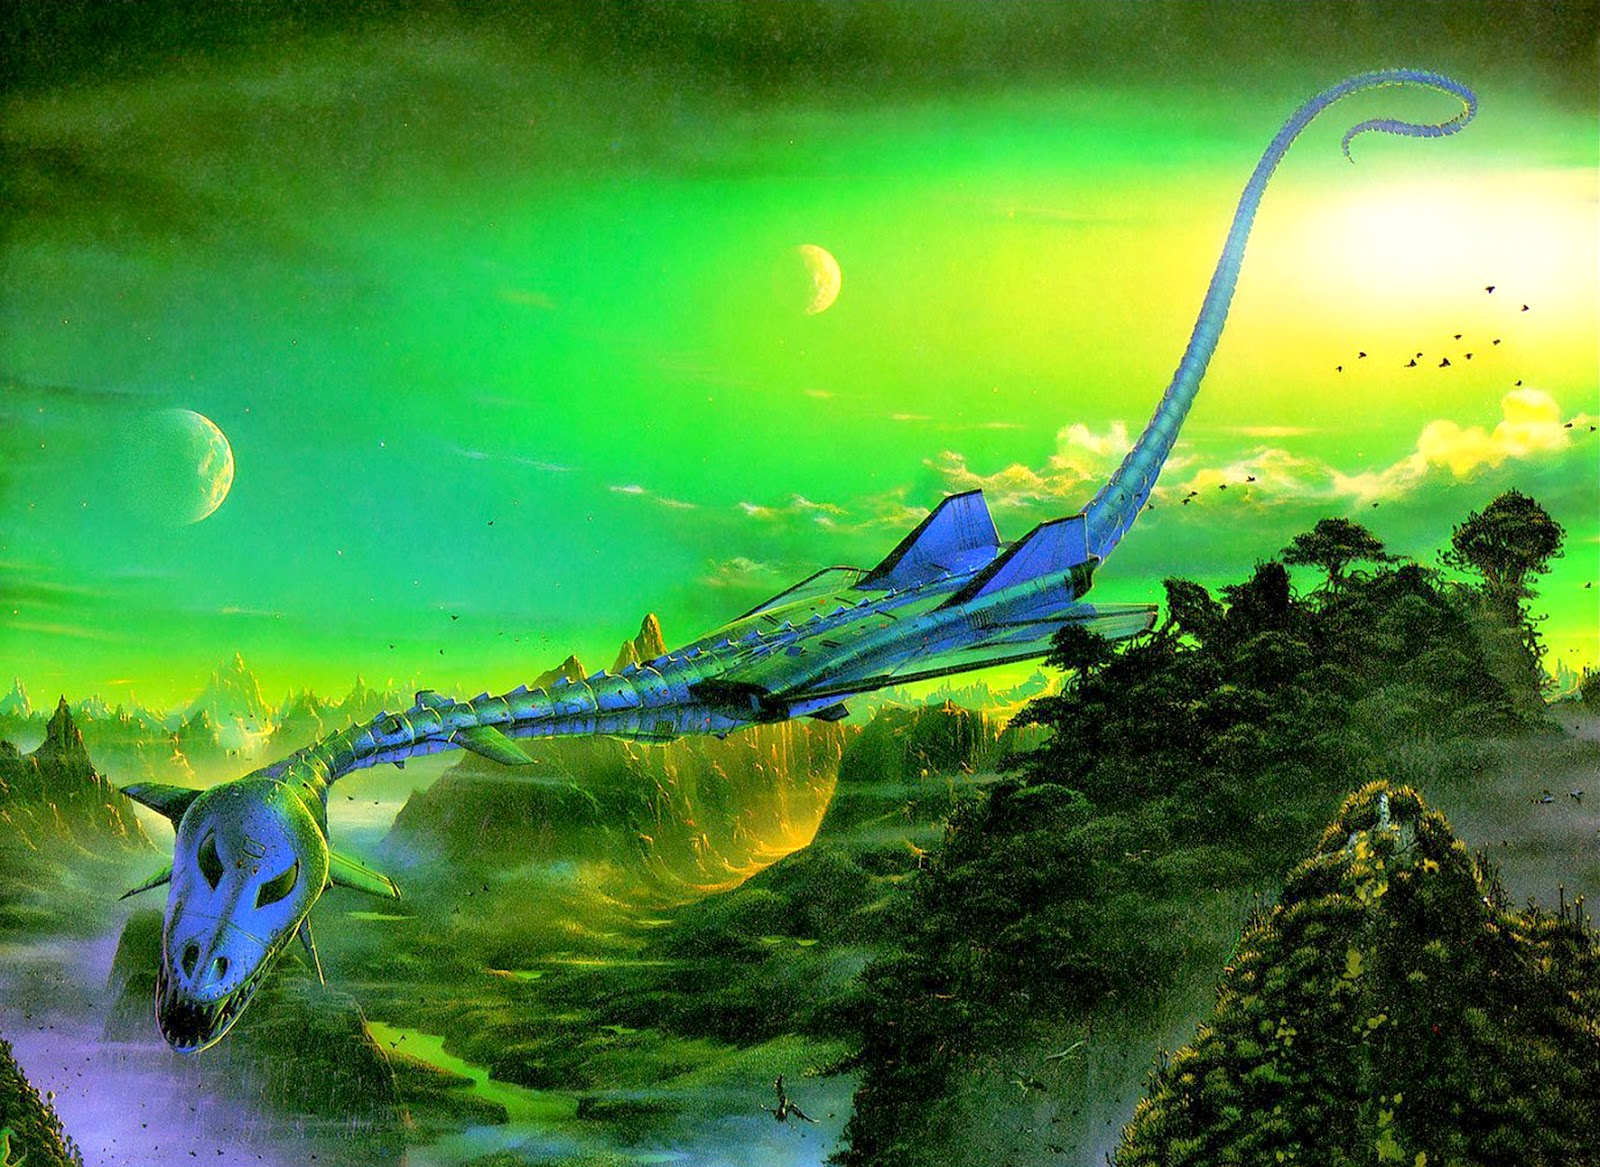 Tim White - The Dragon Drone